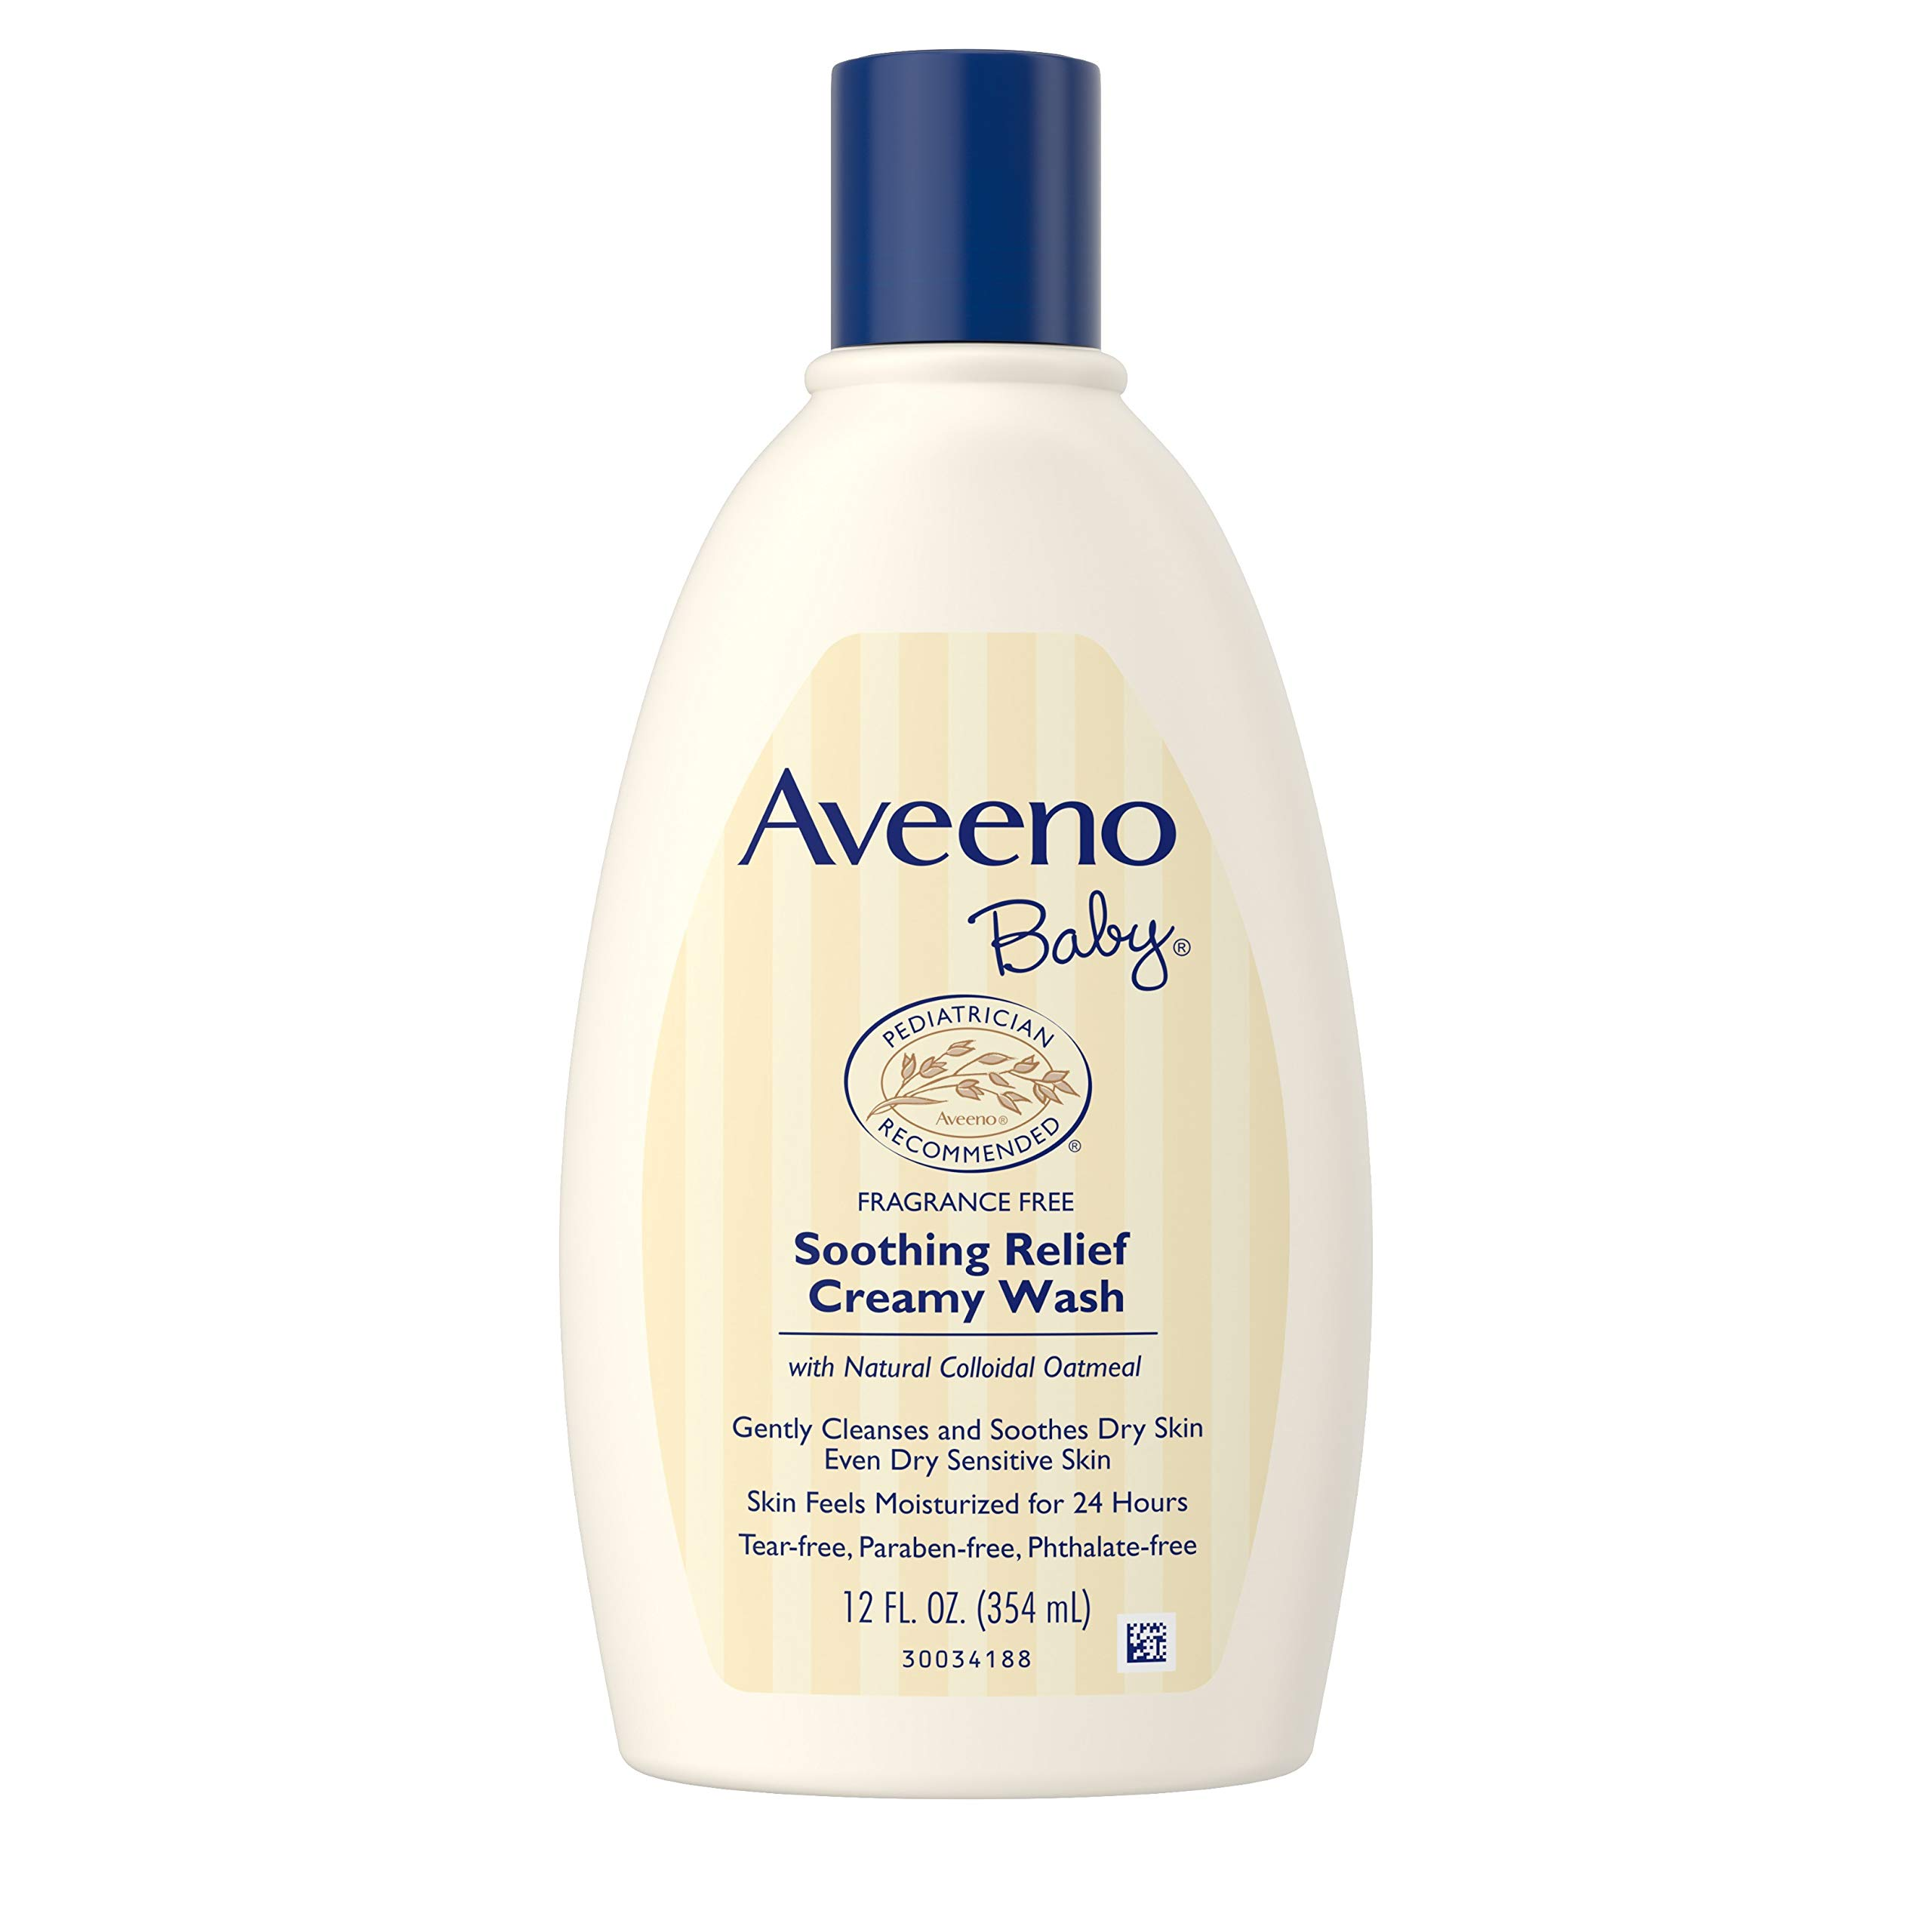 Aveeno Baby Soothing Relief Creamy Wash with Natural Colloidal Oatmeal for Dry & Sensitive Skin, Hypoallergenic & Tear-Free Formula, 12 fl. Oz (Pack of 2) by Aveeno Baby